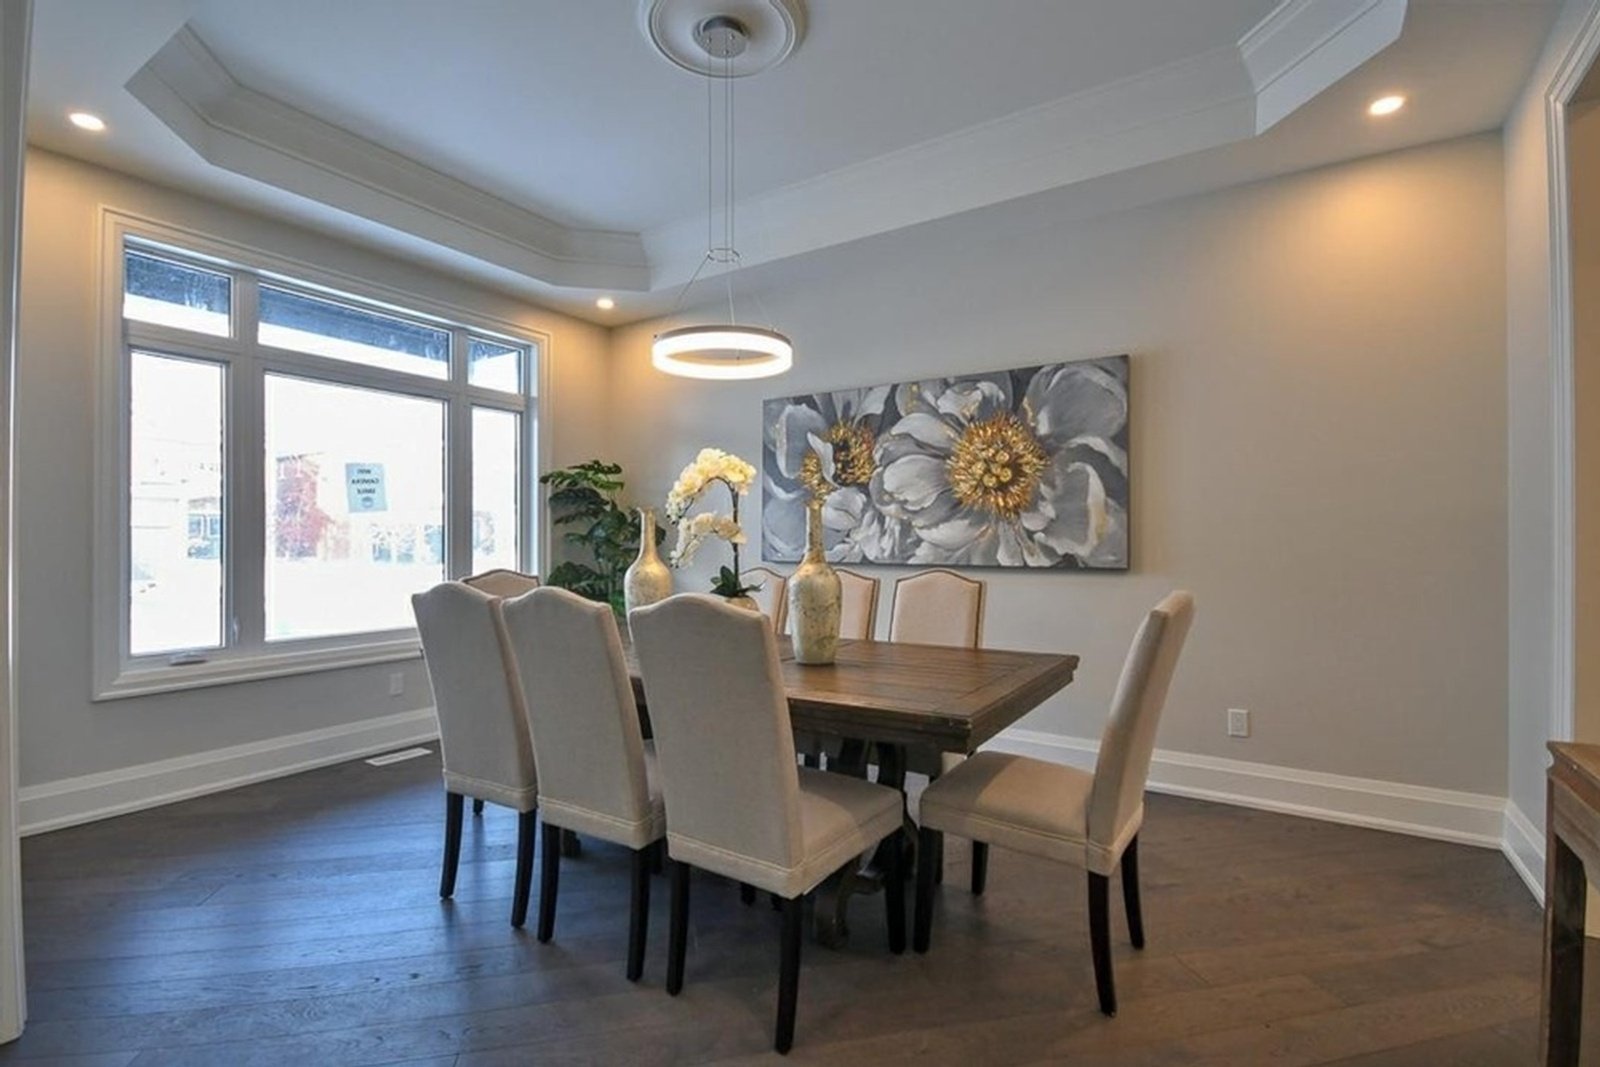 Dining Room - Home Staging Services Pickering by Impressive Staging